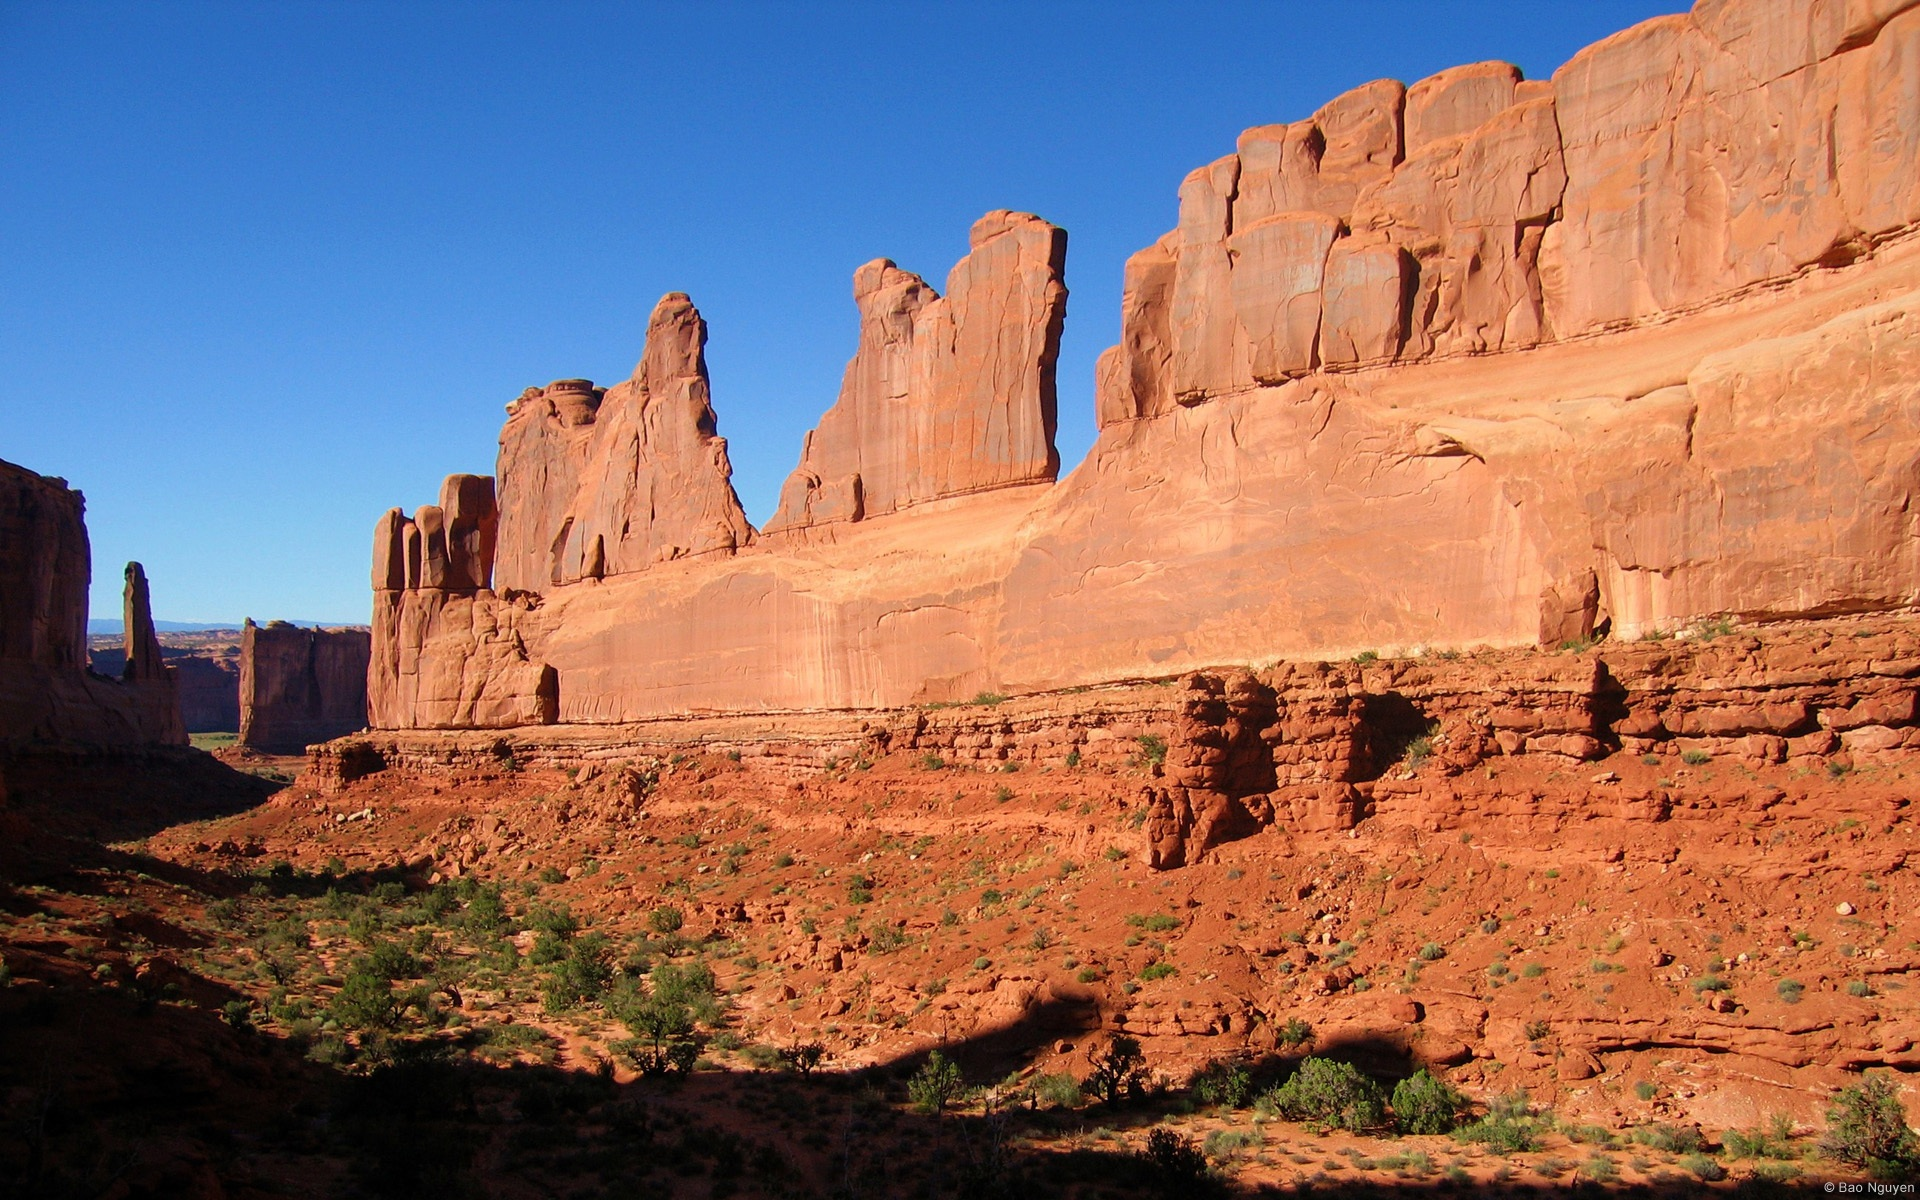 Wallpaper Arches National Park Utah 1920x1200 Hd Picture Image